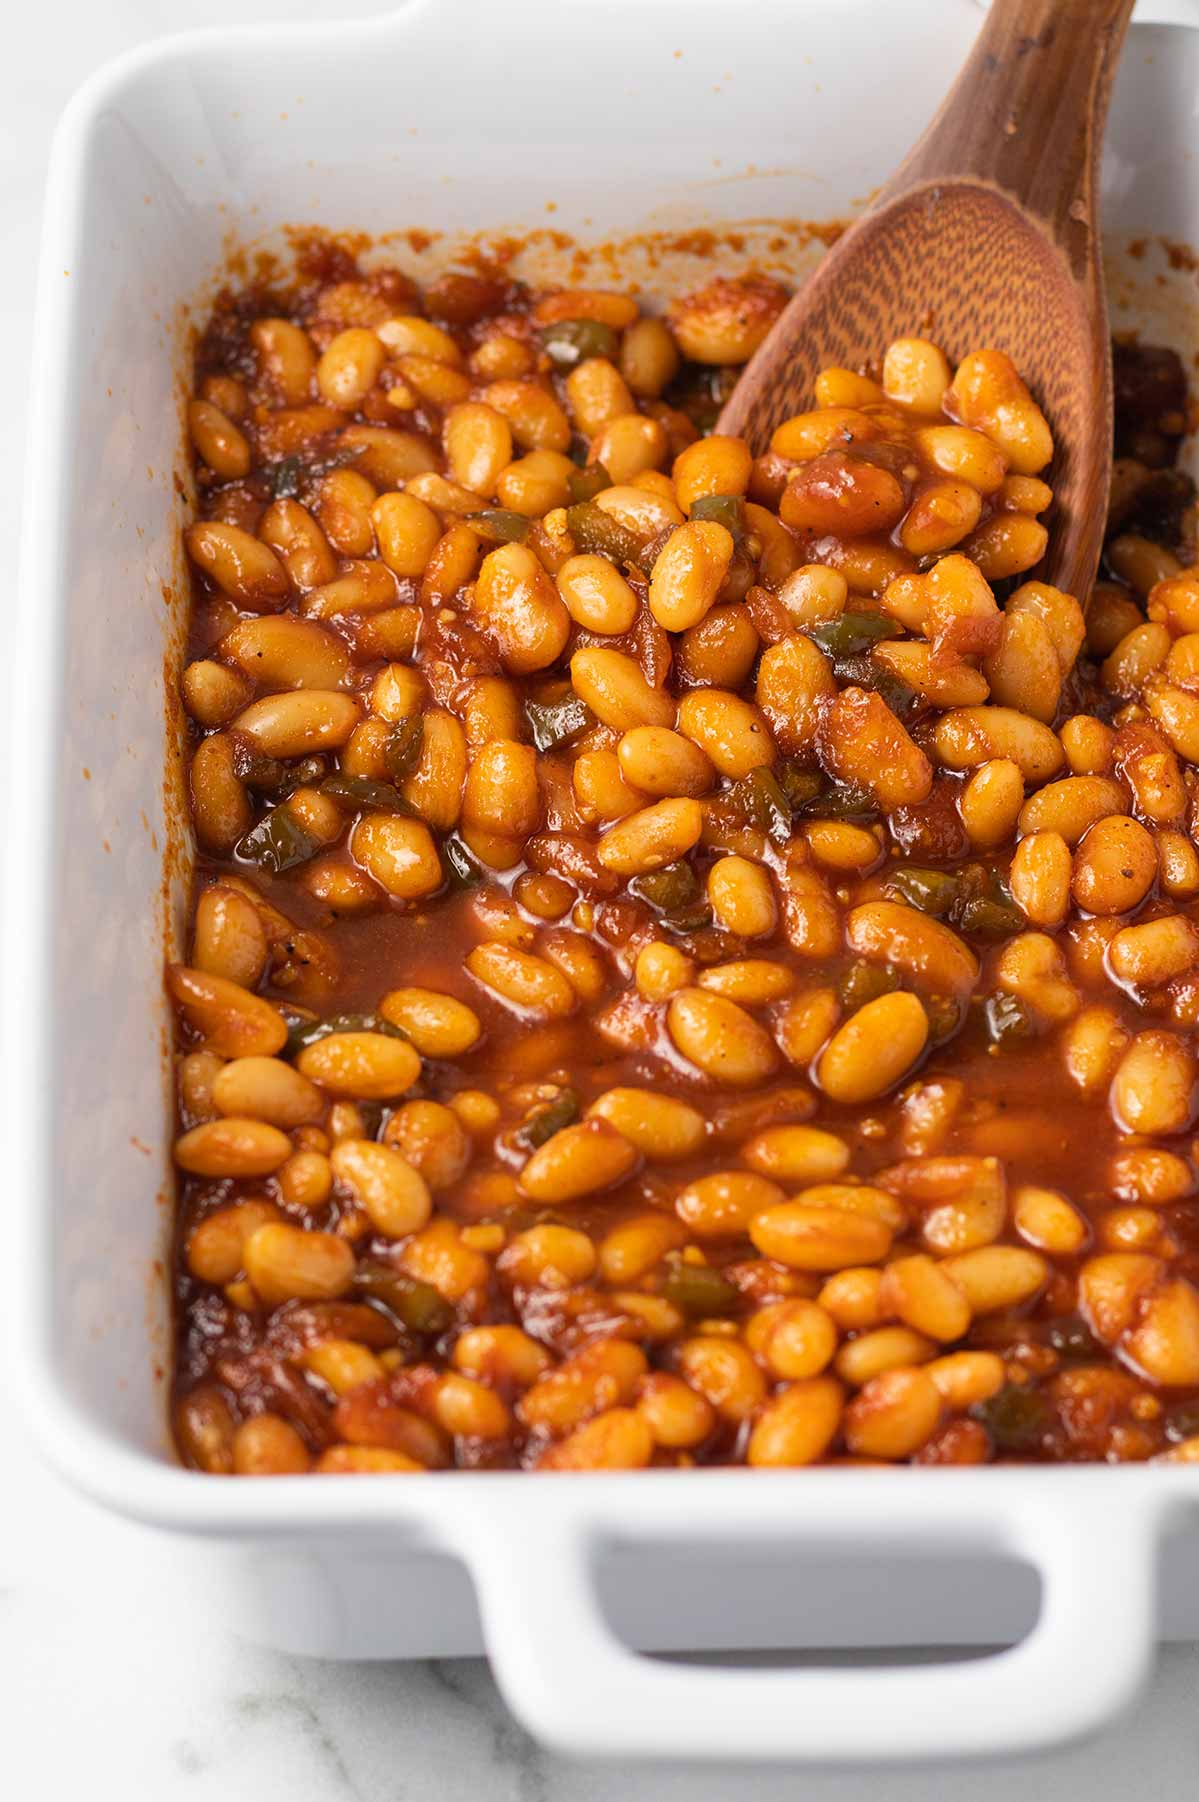 A close-up shot of vegan baked beans in a rectangle baking dish with a wooden spoon.